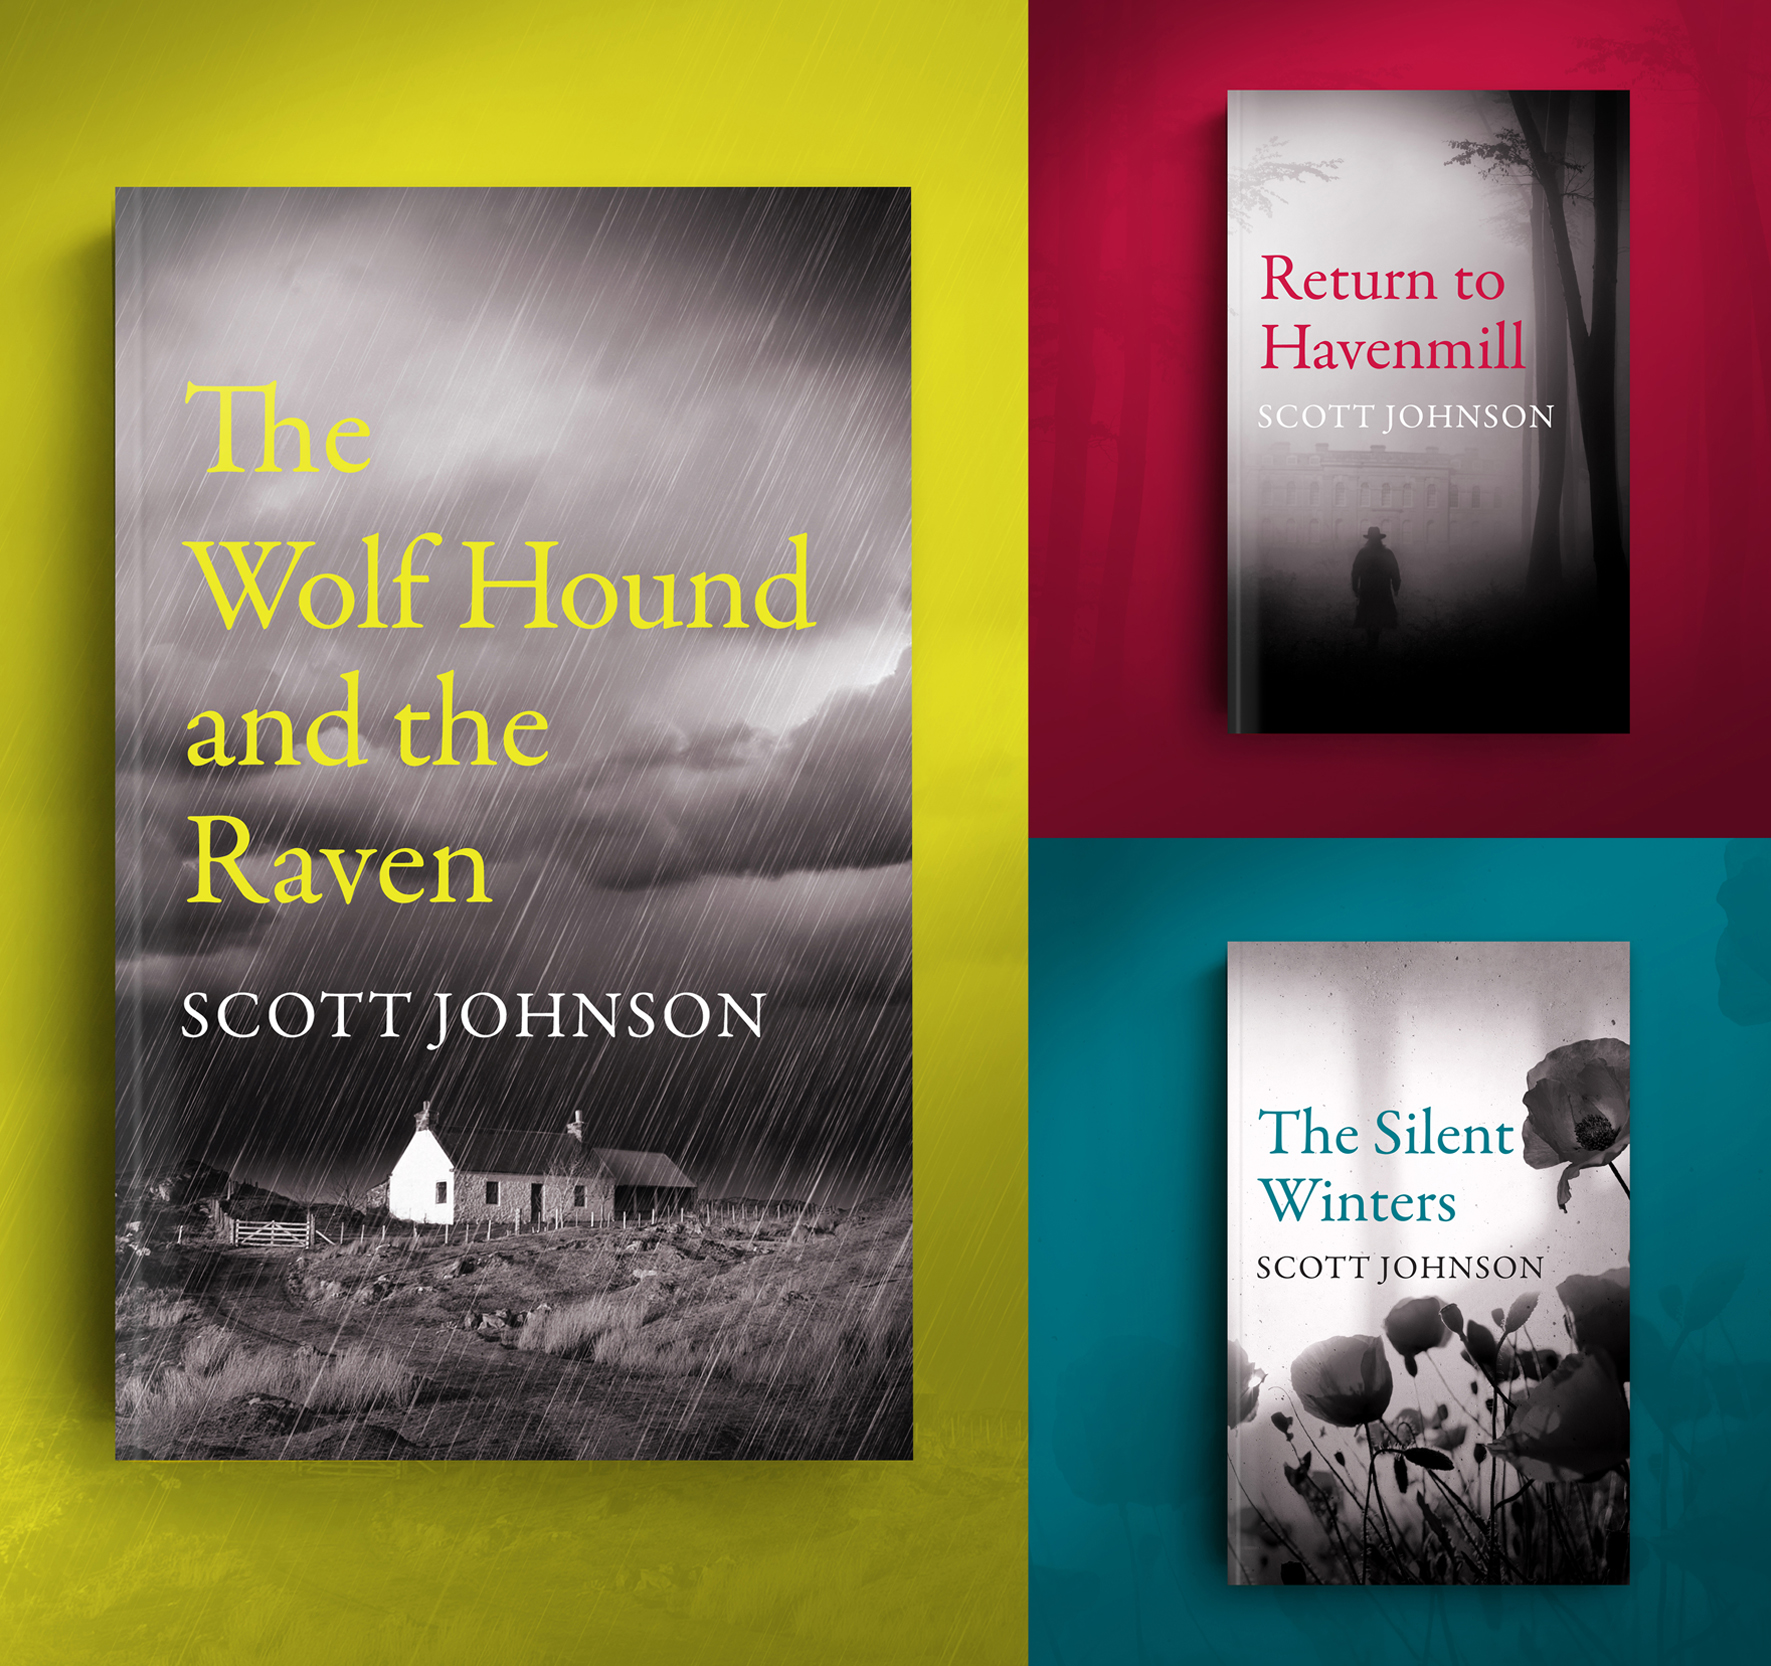 The Wolf Hound and the Raven paperback trilogy